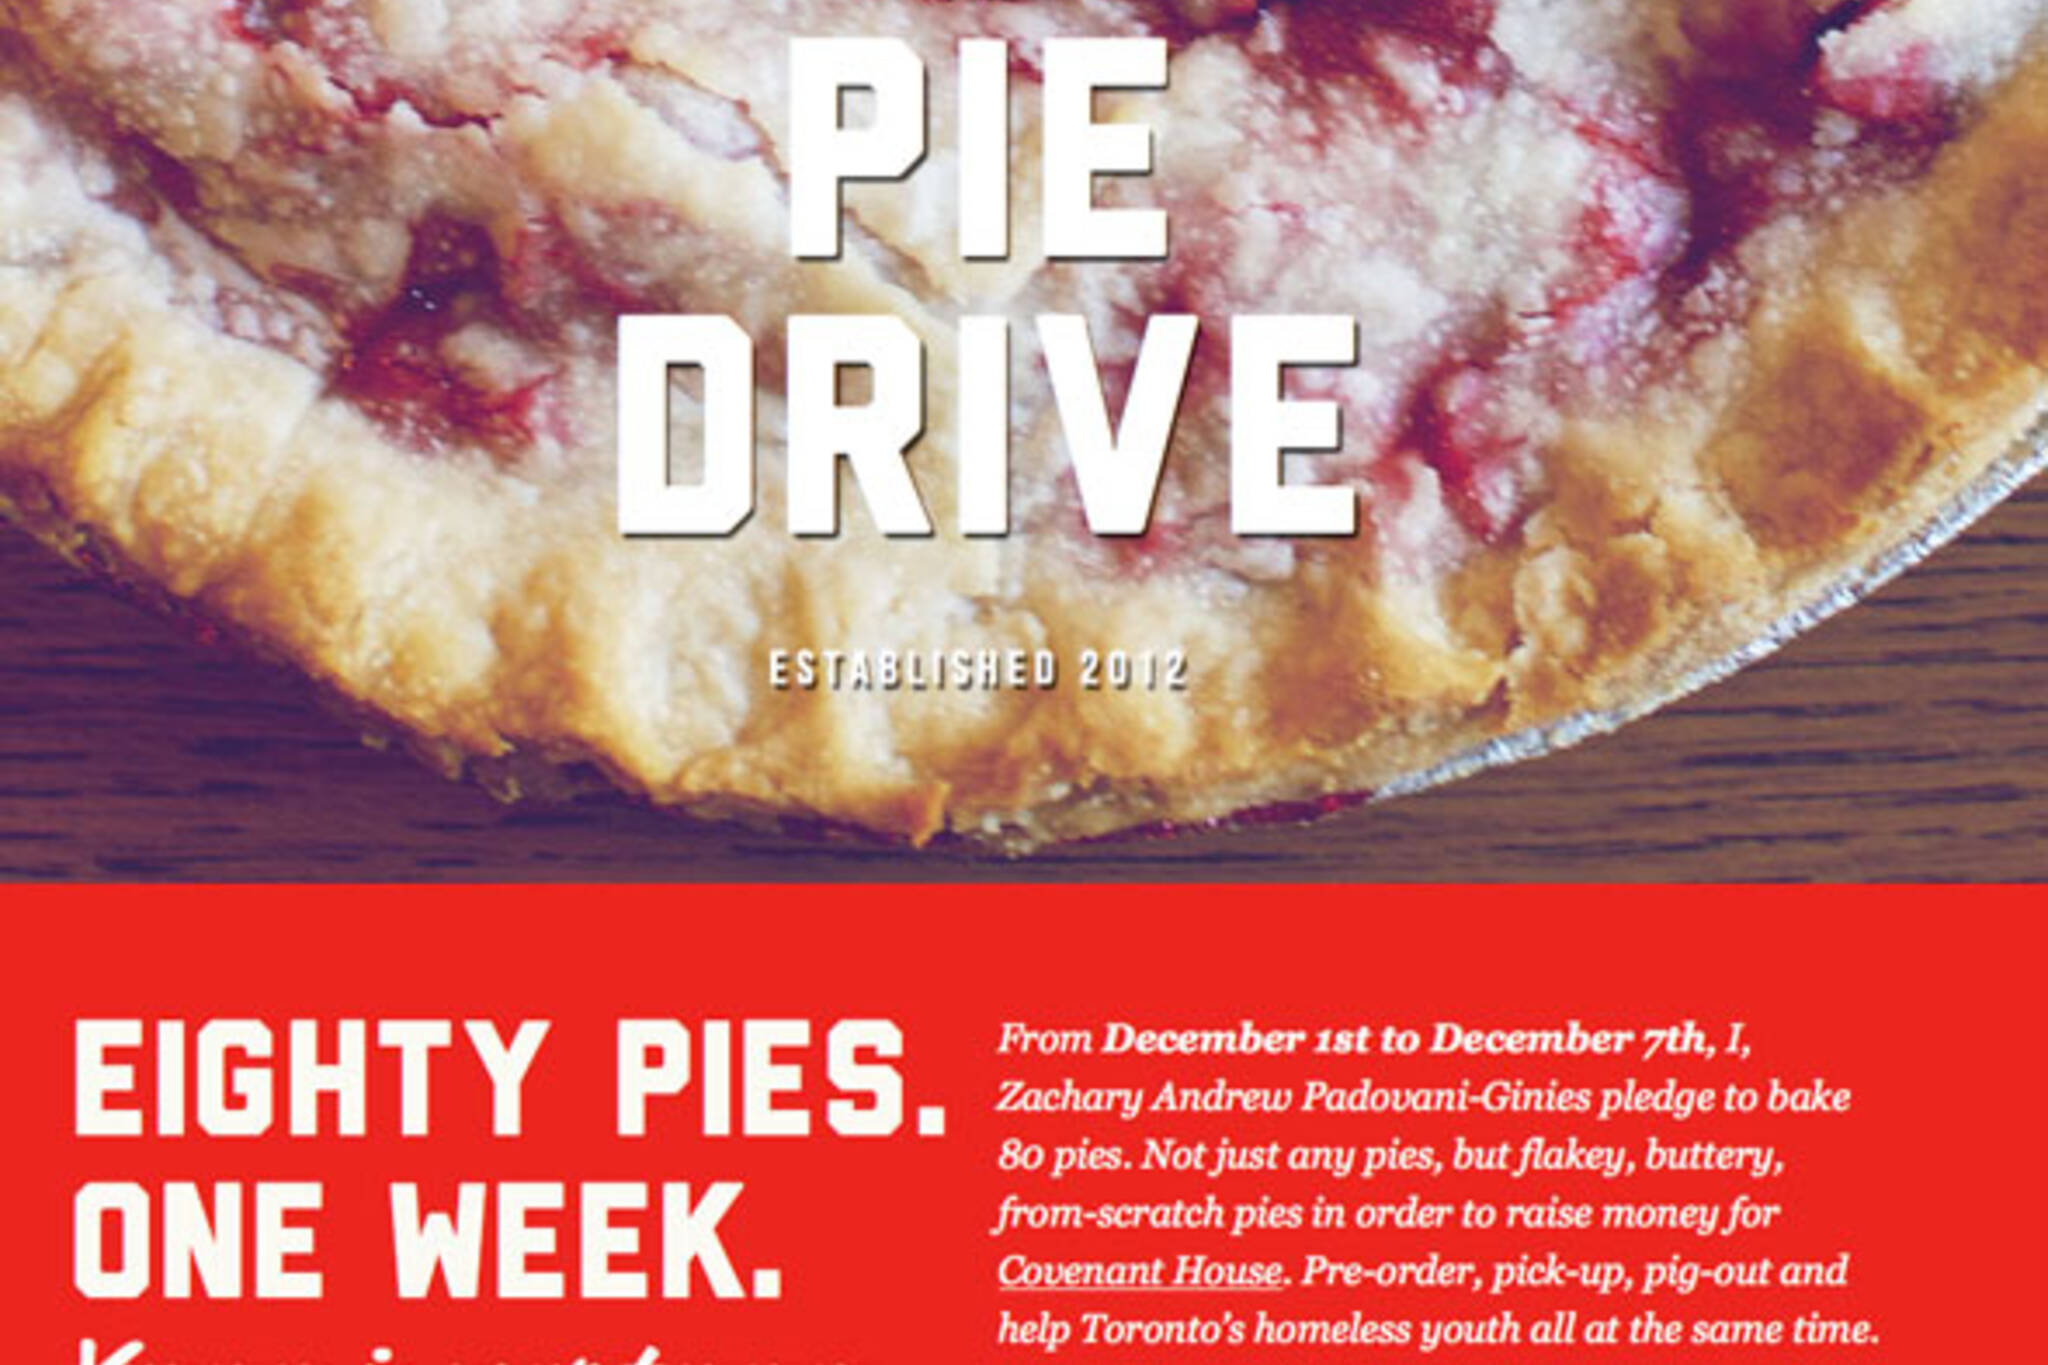 The Pie Drive